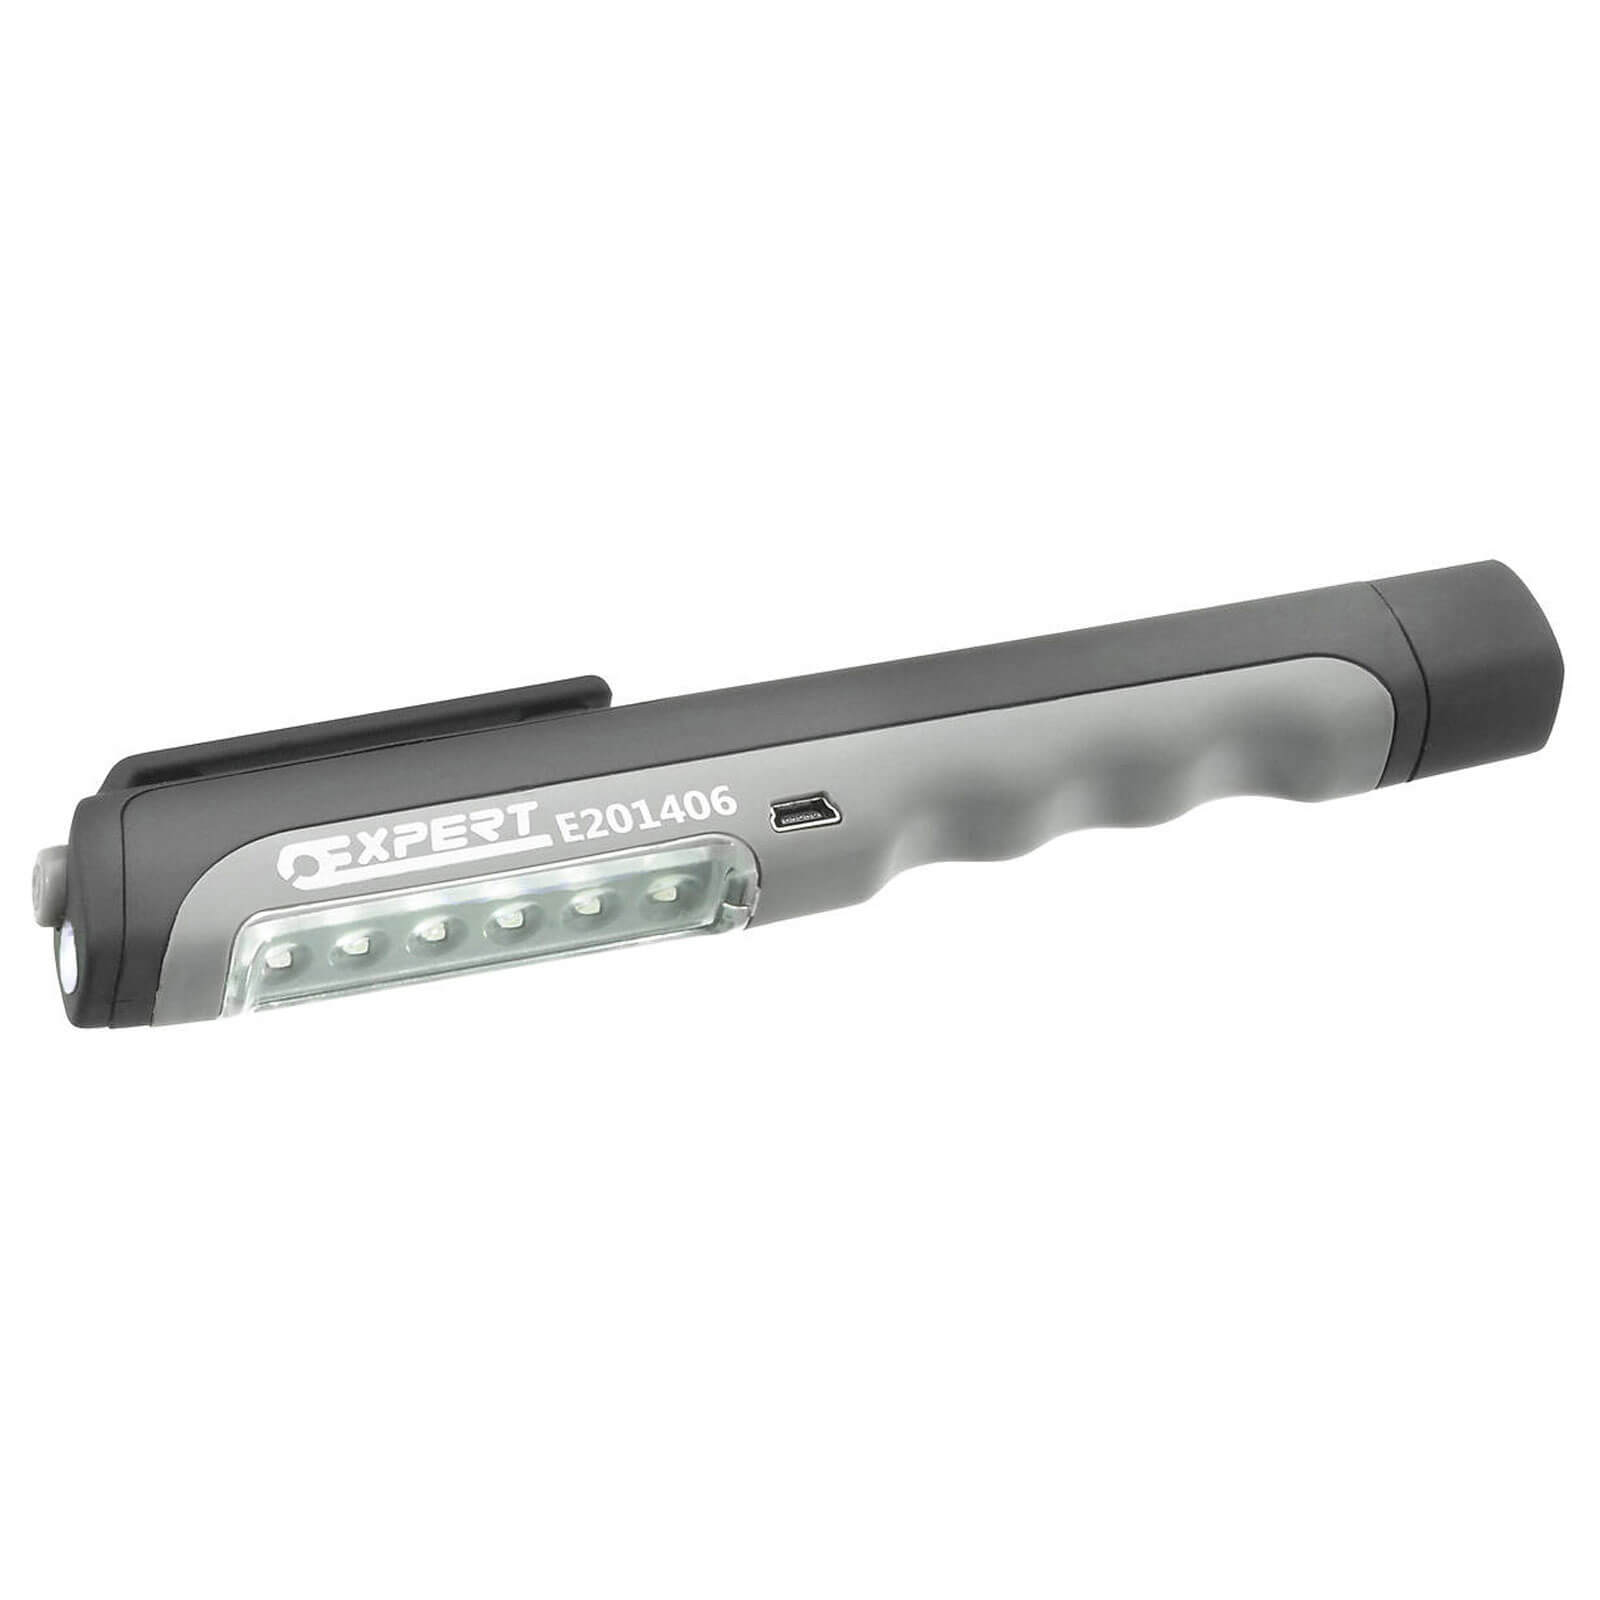 Image of Britool Expert USB Rechargeable LED Pen Light Torch 45 Lumens